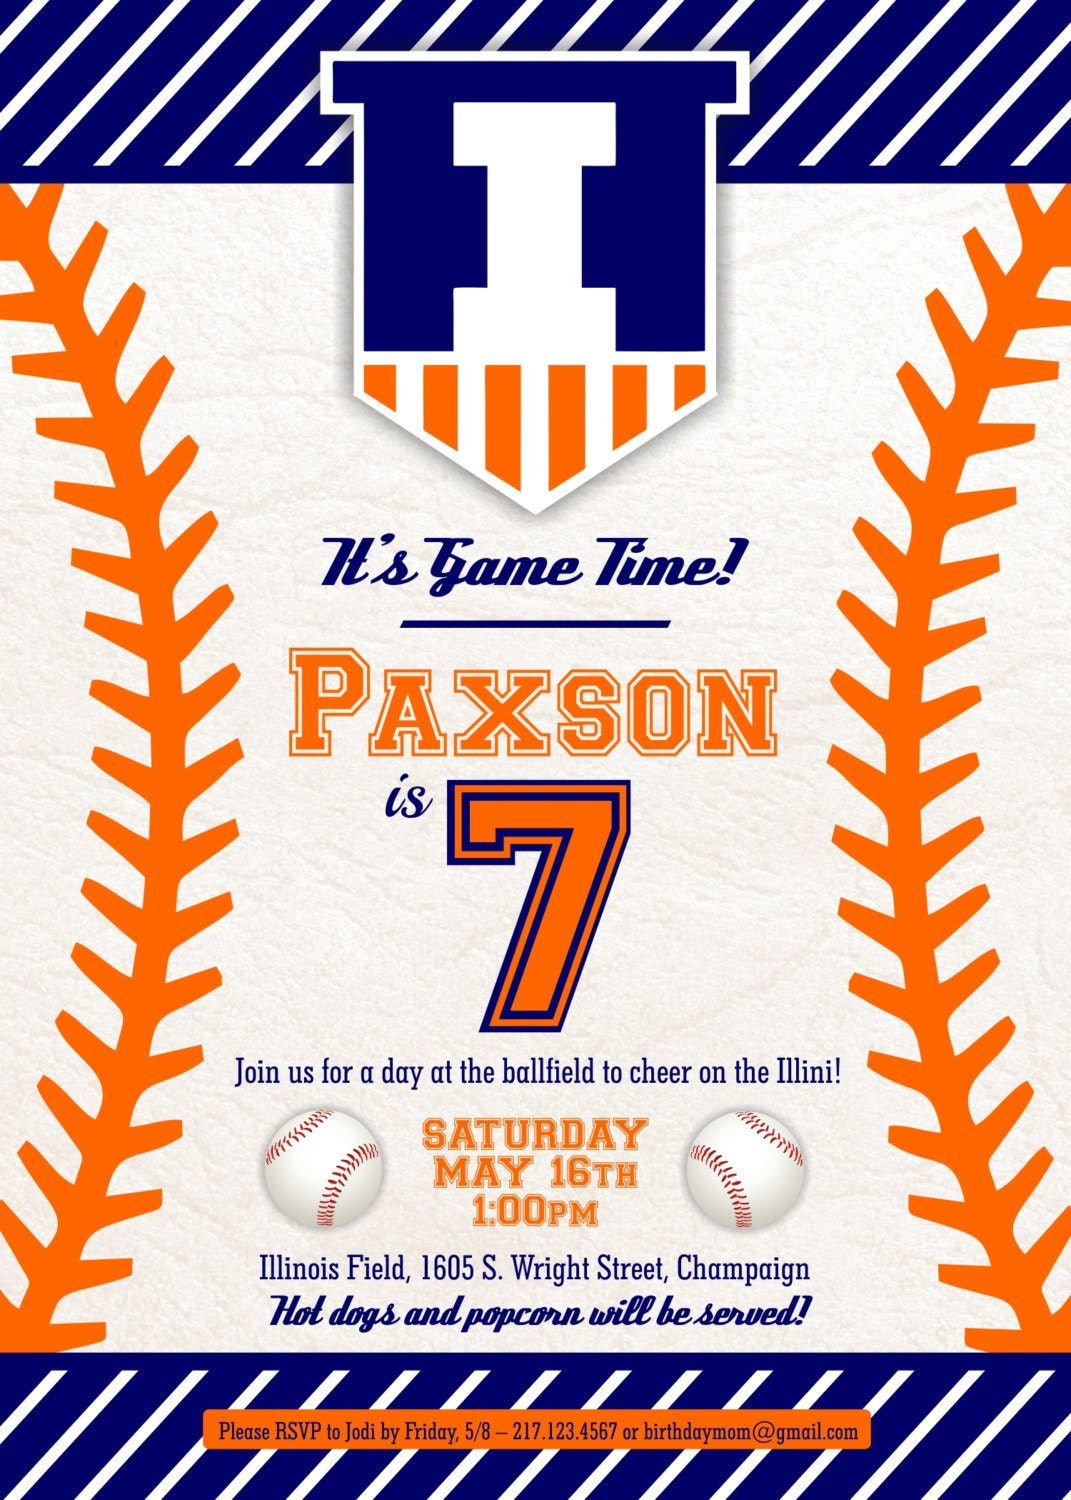 Illinois Baseball themed Birthday invitation | Etsy